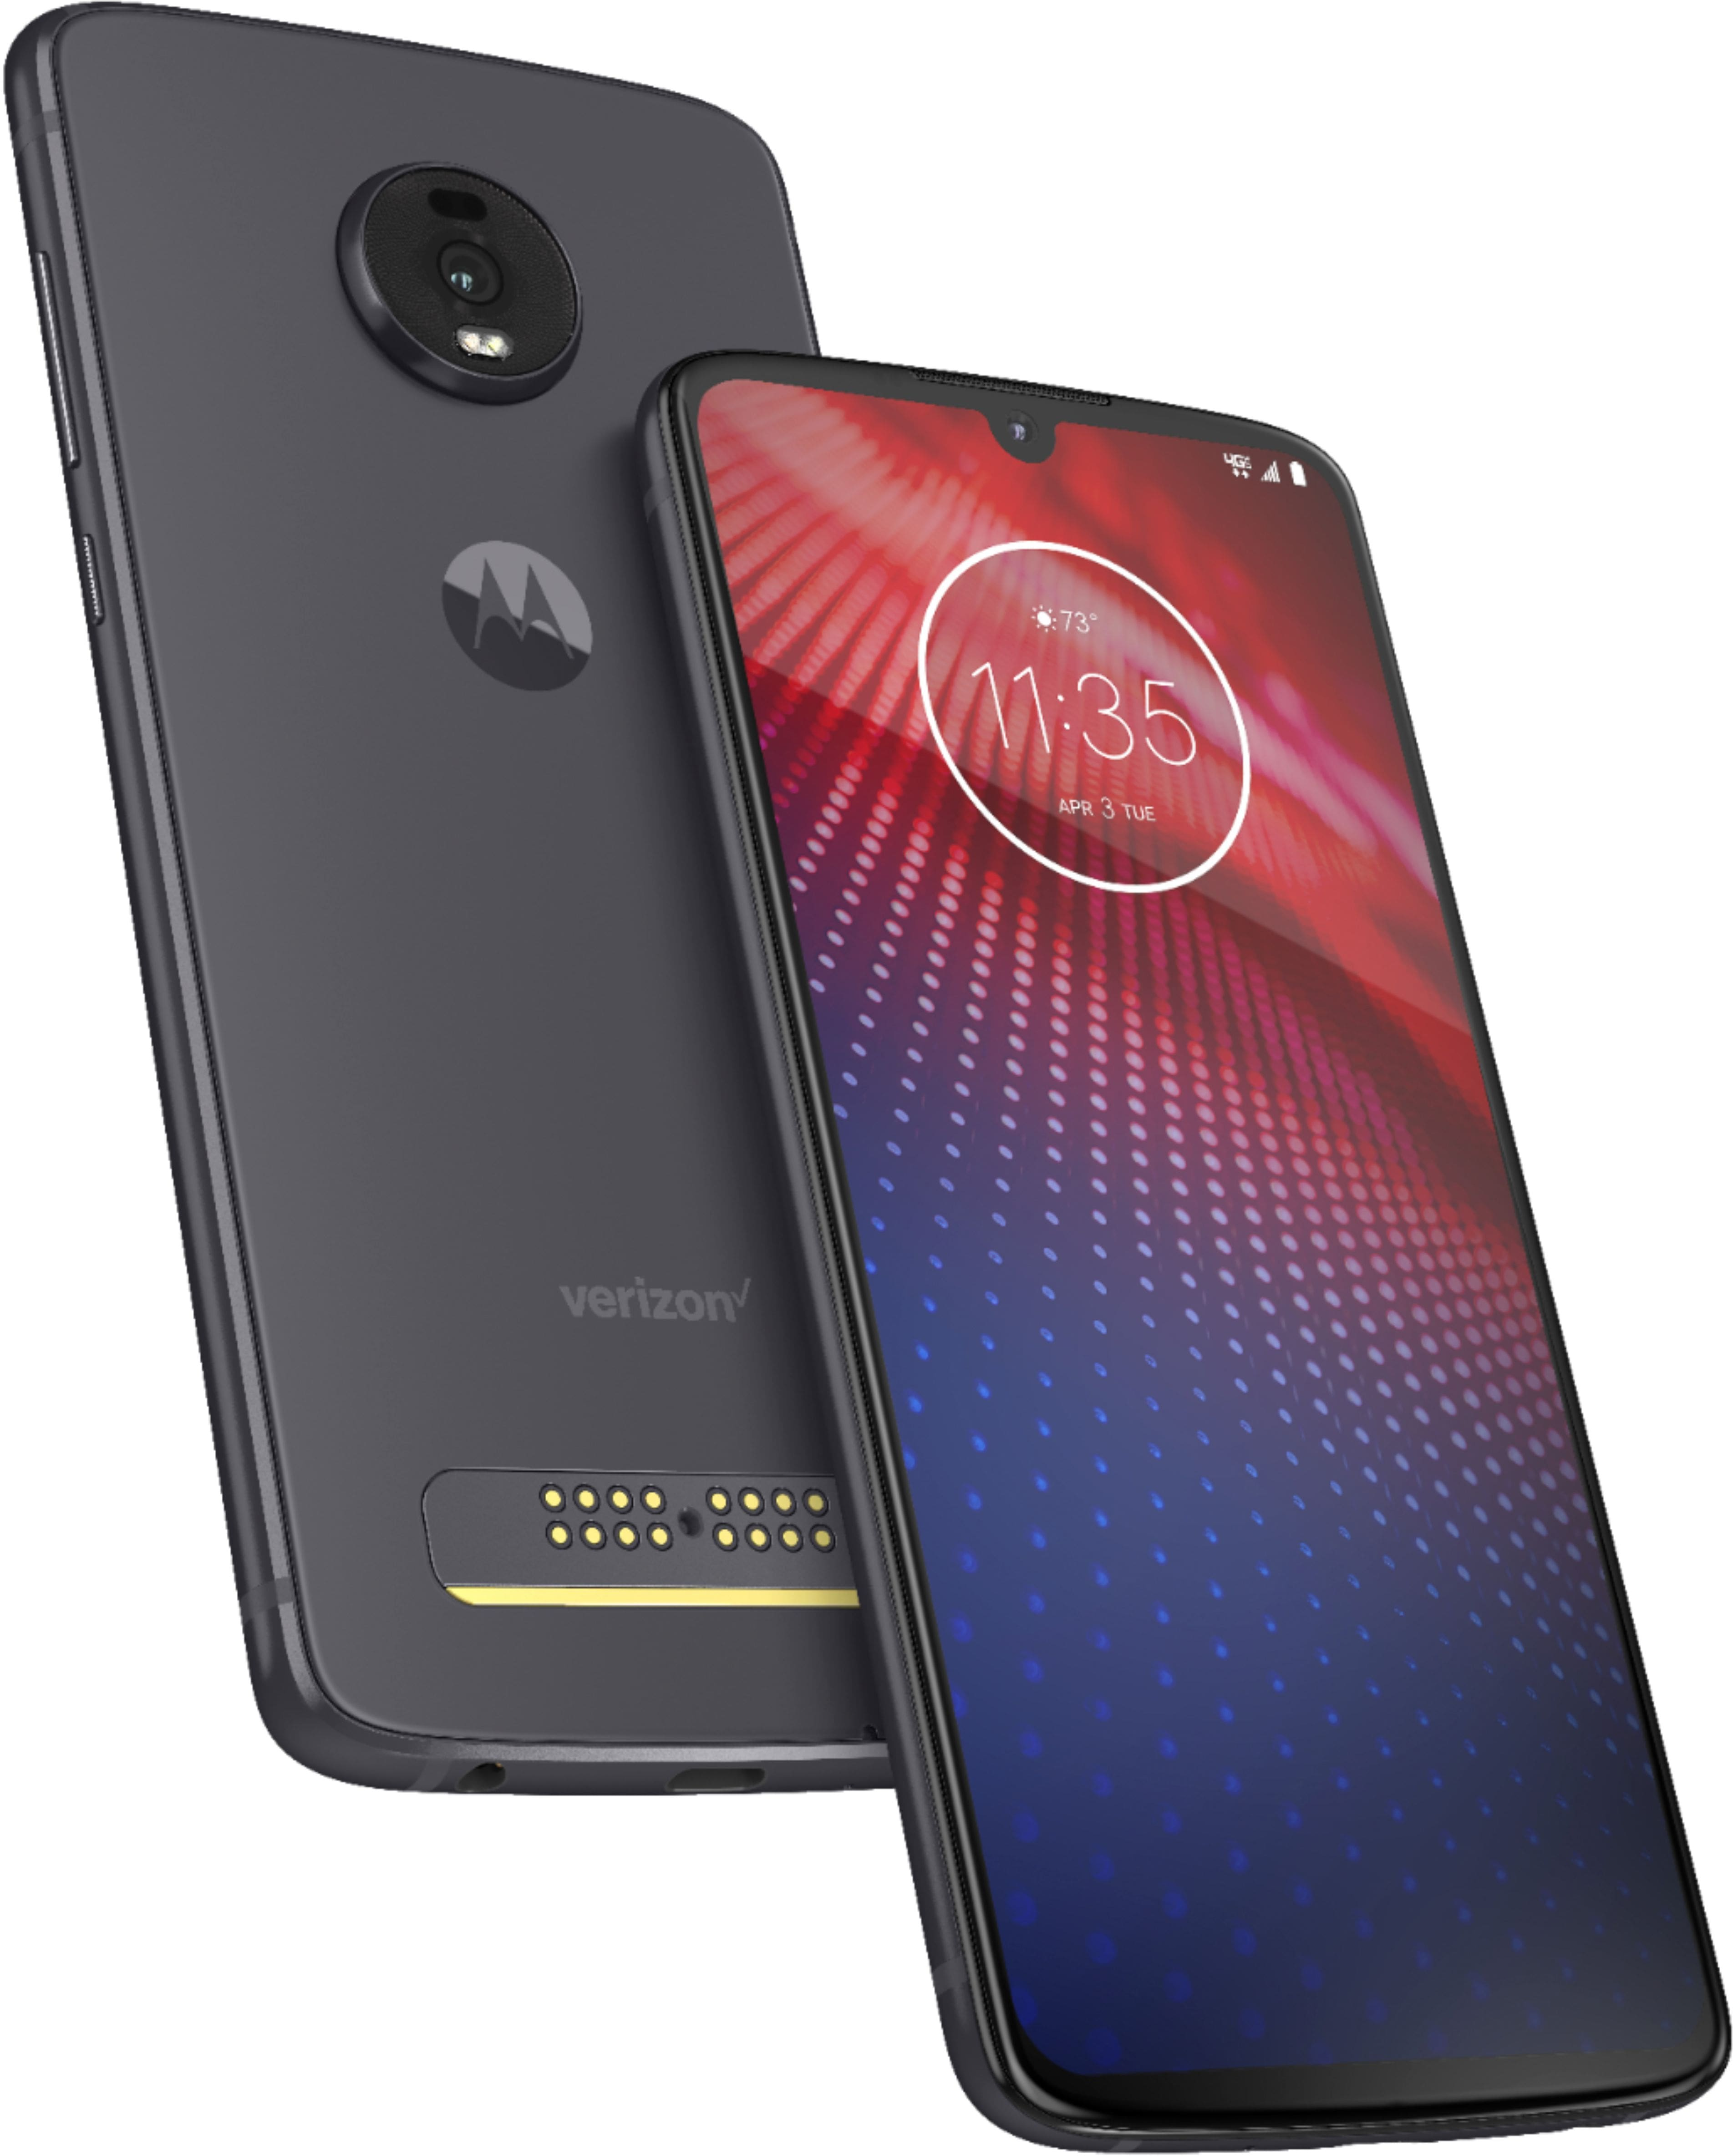 Motorola moto z⁴ Flash Gray (Verizon) New Line or Account - Best Buy $5/ Month With Monthly Bill Credits